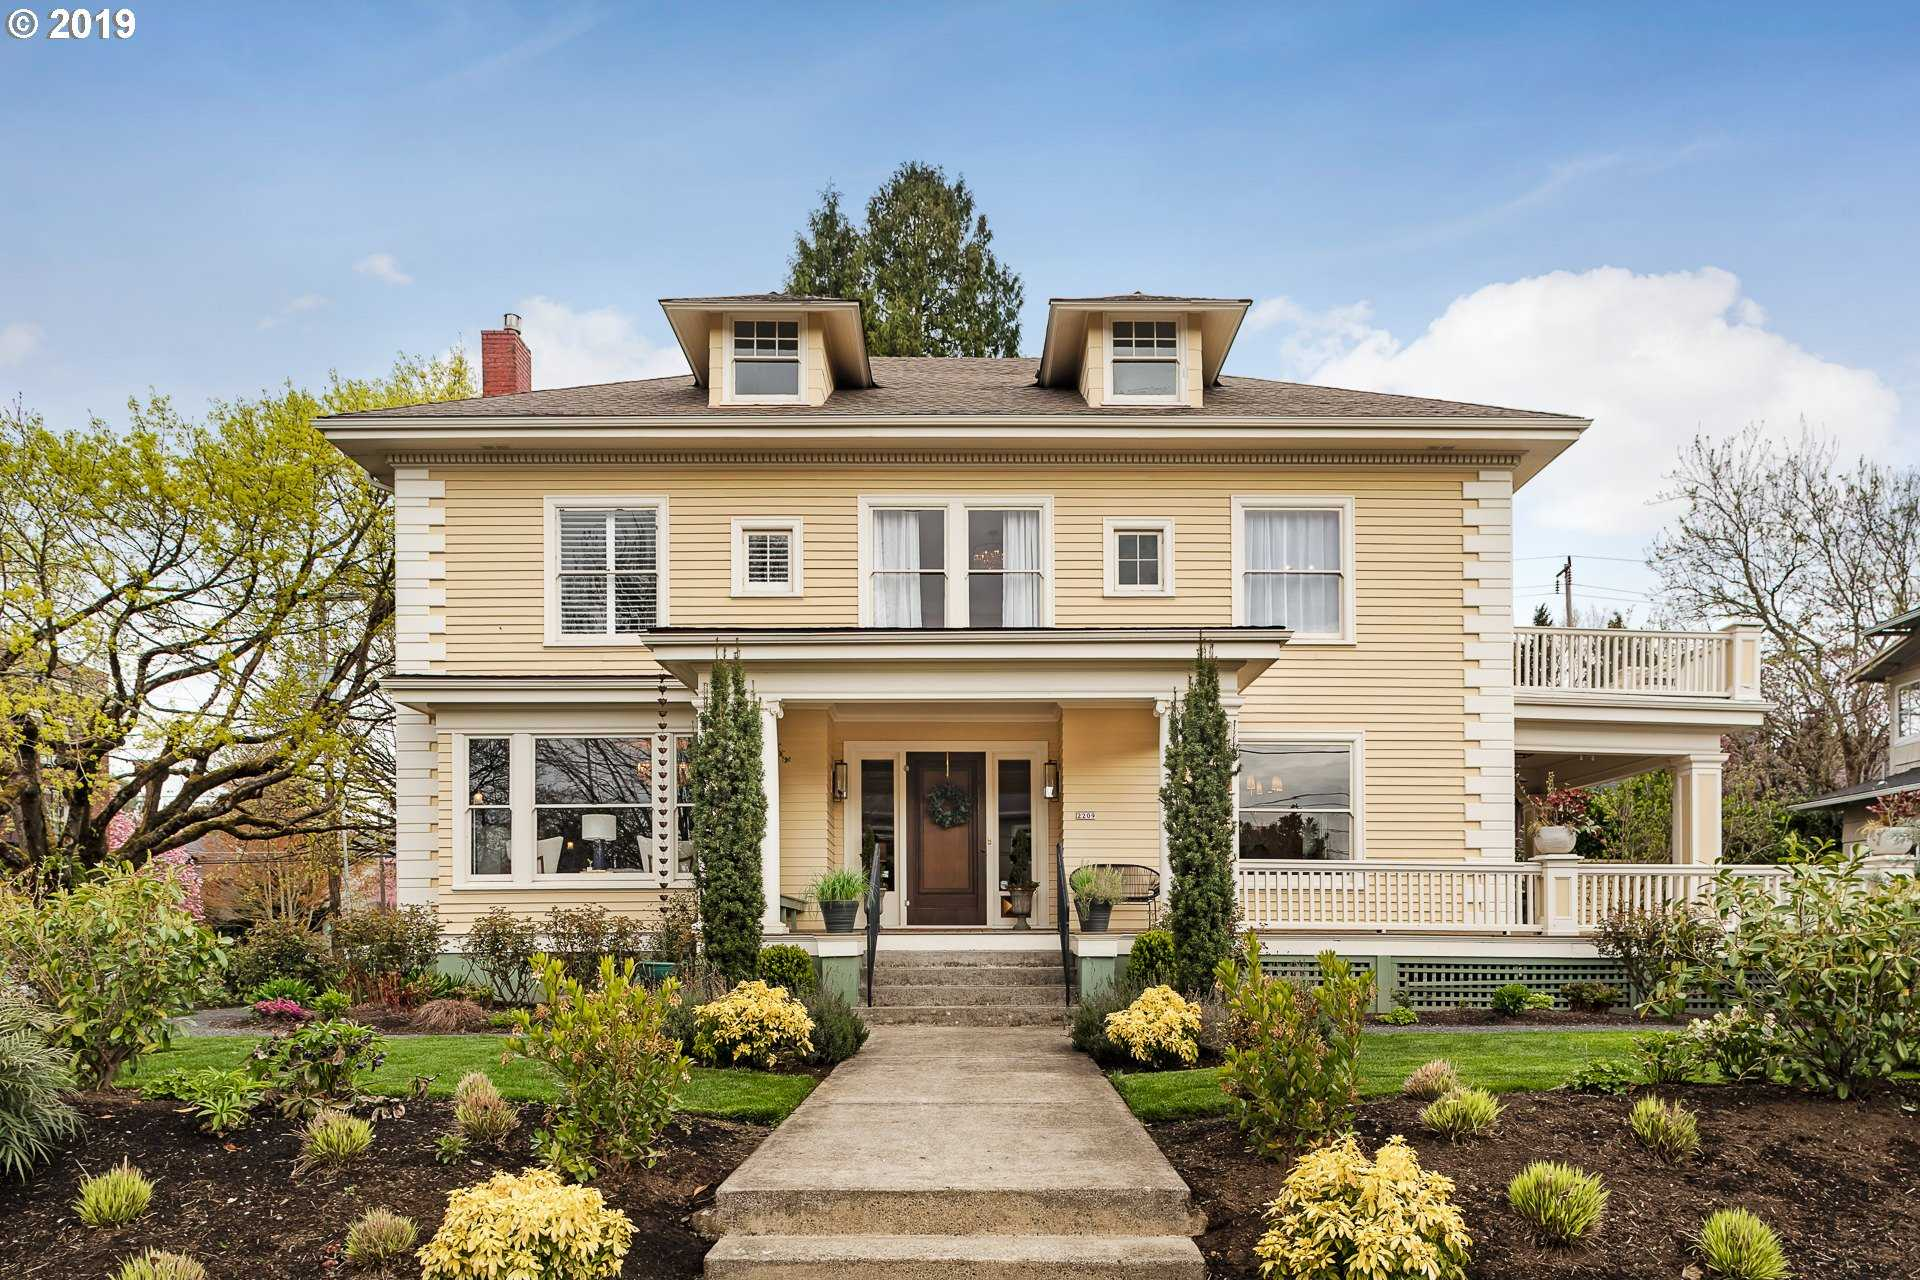 $1,795,000 - 5Br/3Ba -  for Sale in Irvington, Portland